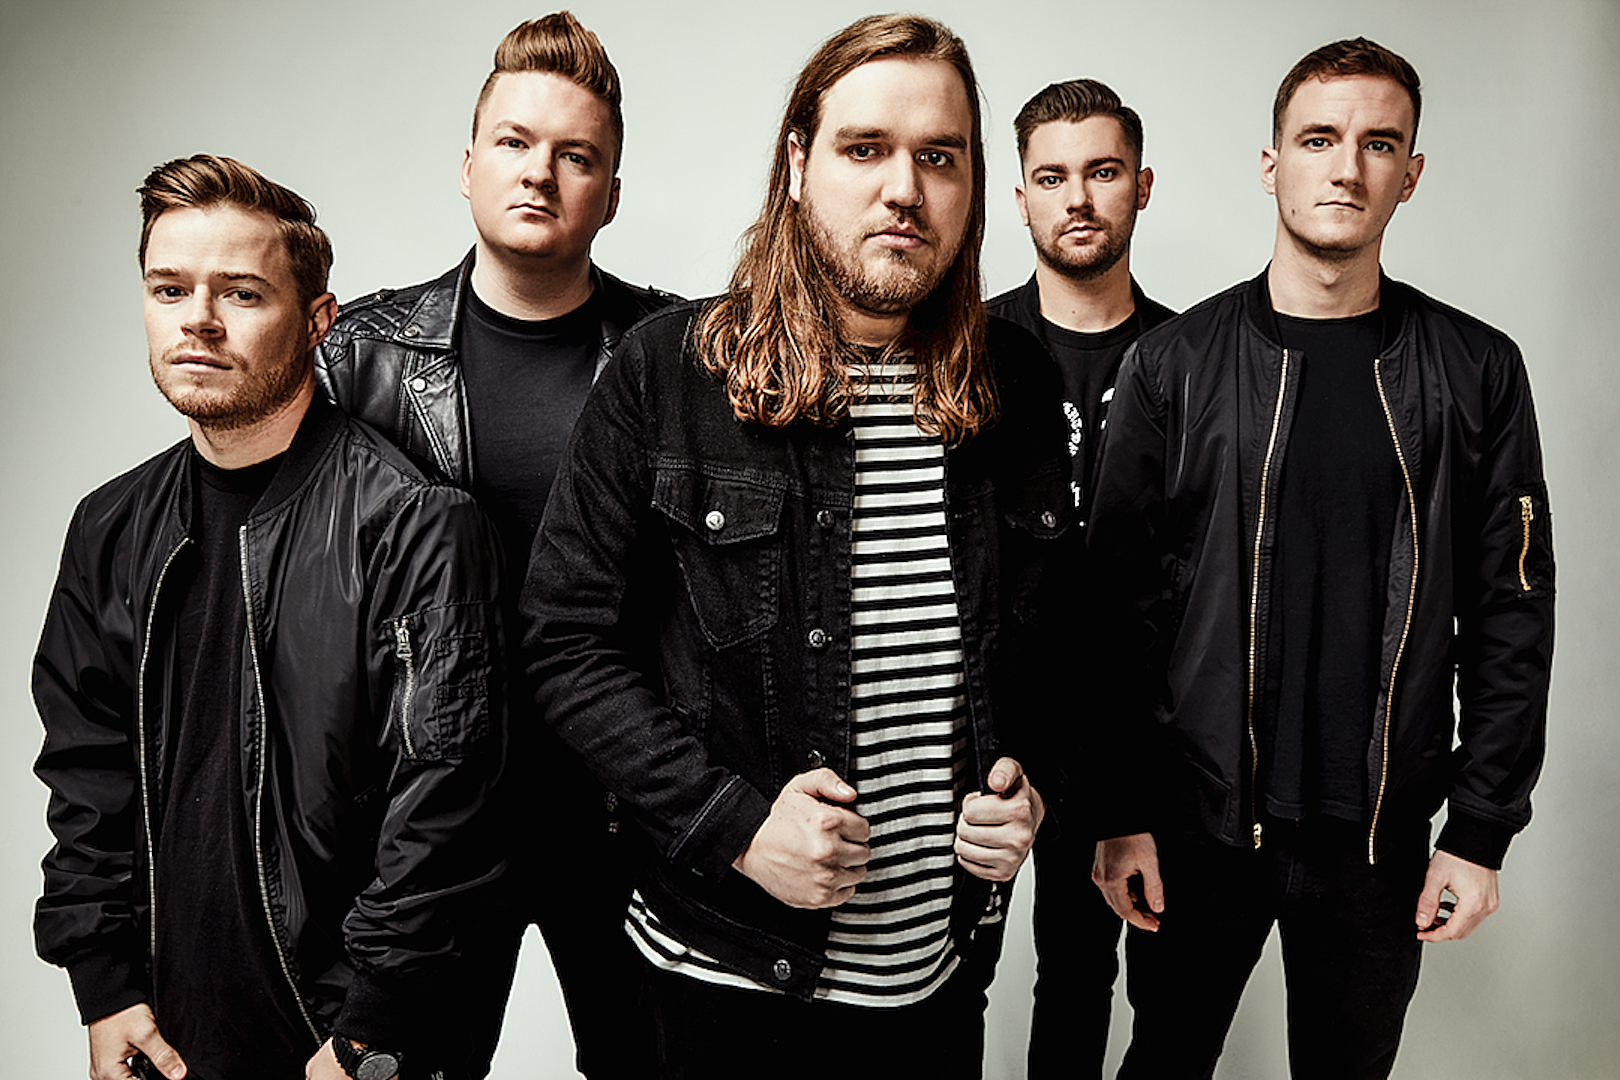 Wage War's Melodic Side Exposed on New Song 'Me Against Myself'